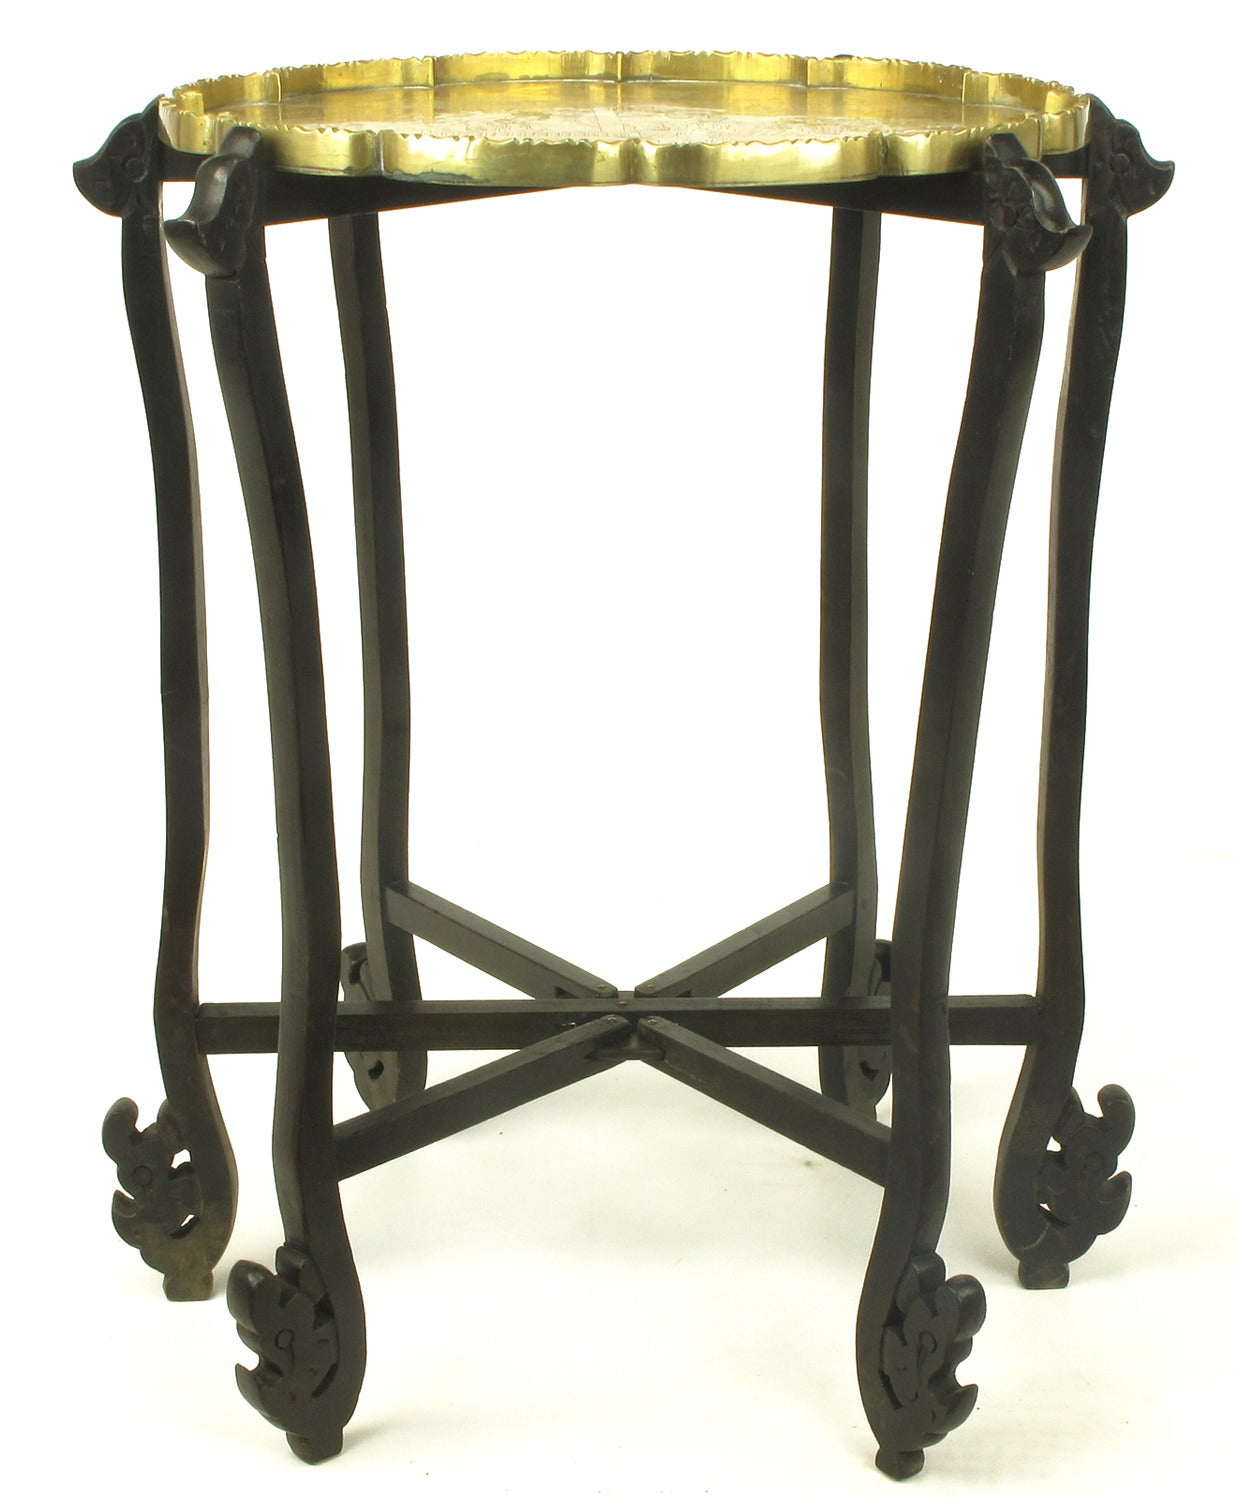 carved ebony folding table with etched brass tray top for sale at 1stdibs. Black Bedroom Furniture Sets. Home Design Ideas